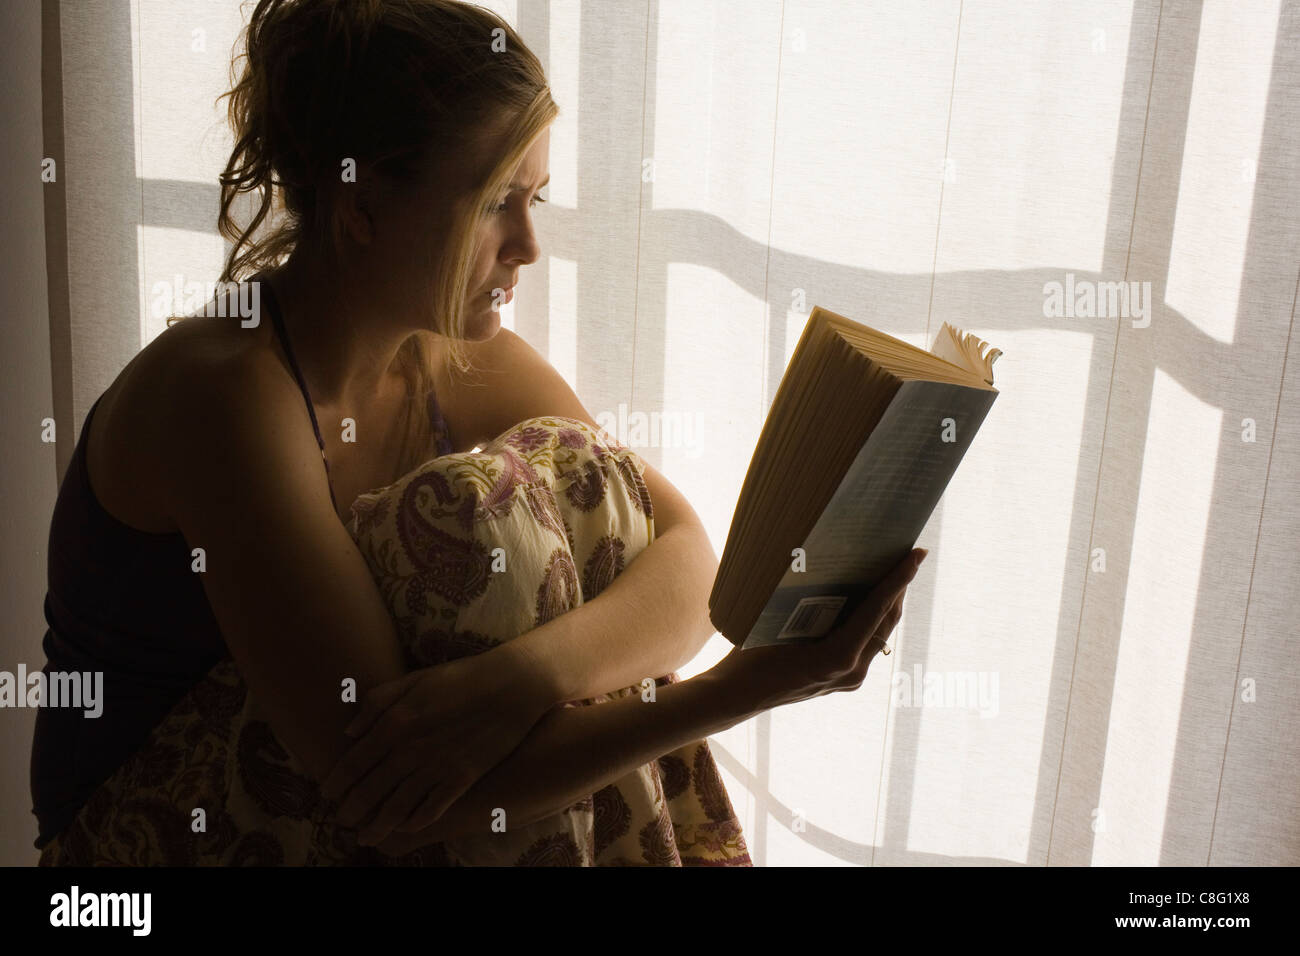 Young woman reading book - Stock Image